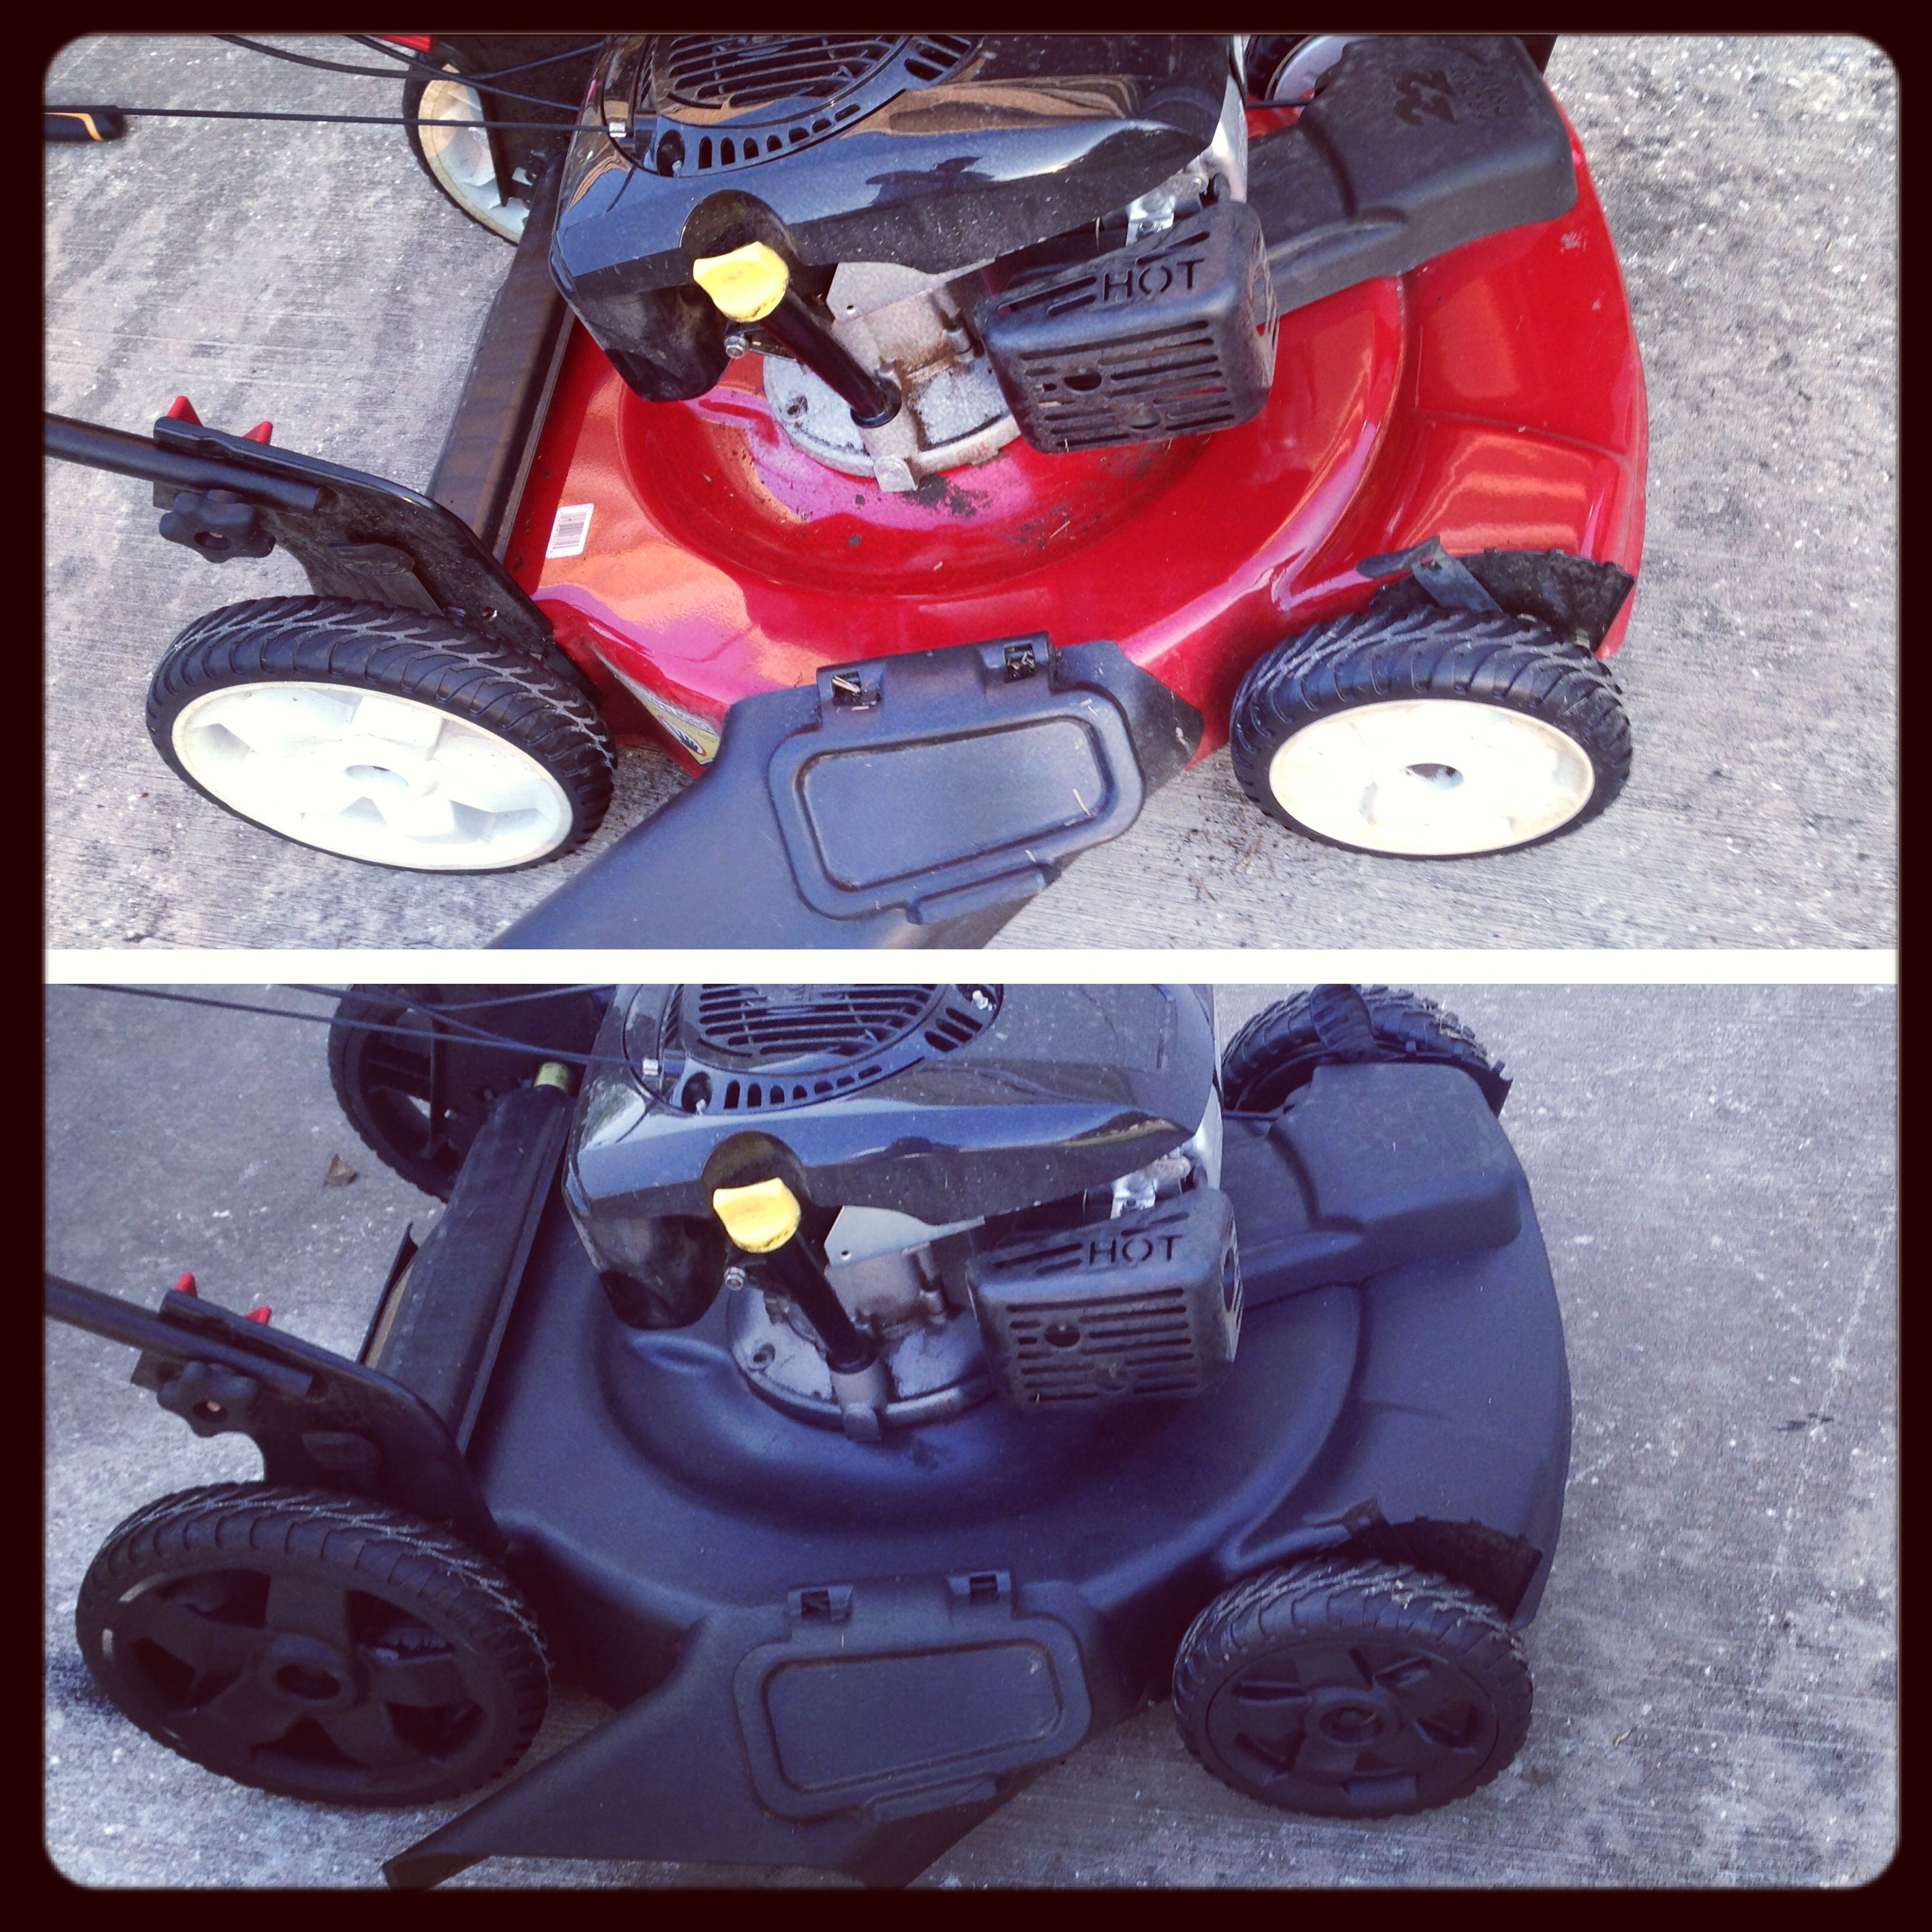 Red lawn mower with white wheels transformed into black on